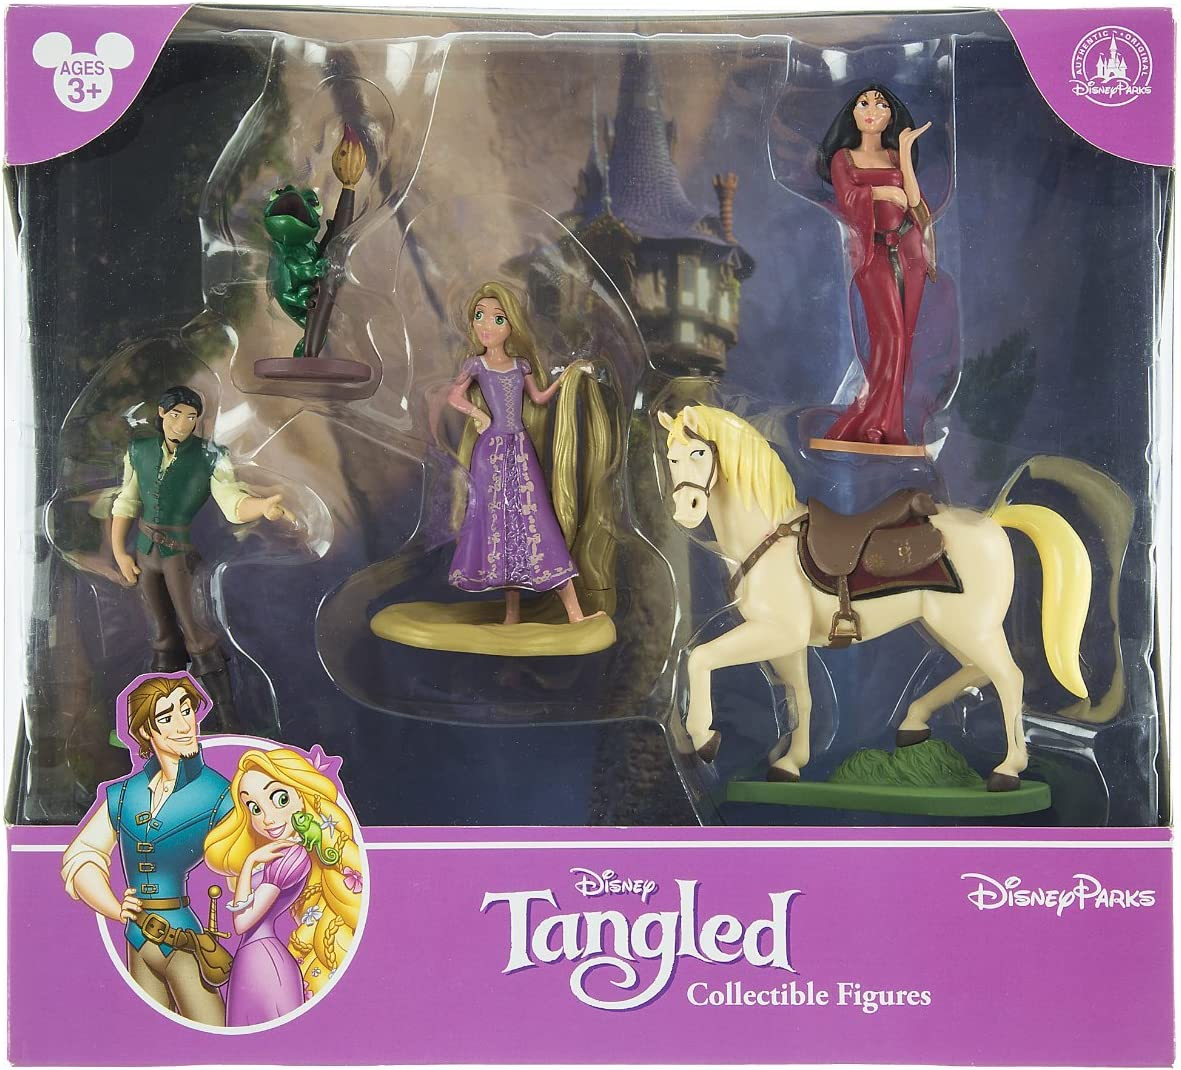 B00CWMIEZ2 Disney Park Tangled Rapunzel Figurine Playset Play Set Cake Topper 81V4CTYoMoL